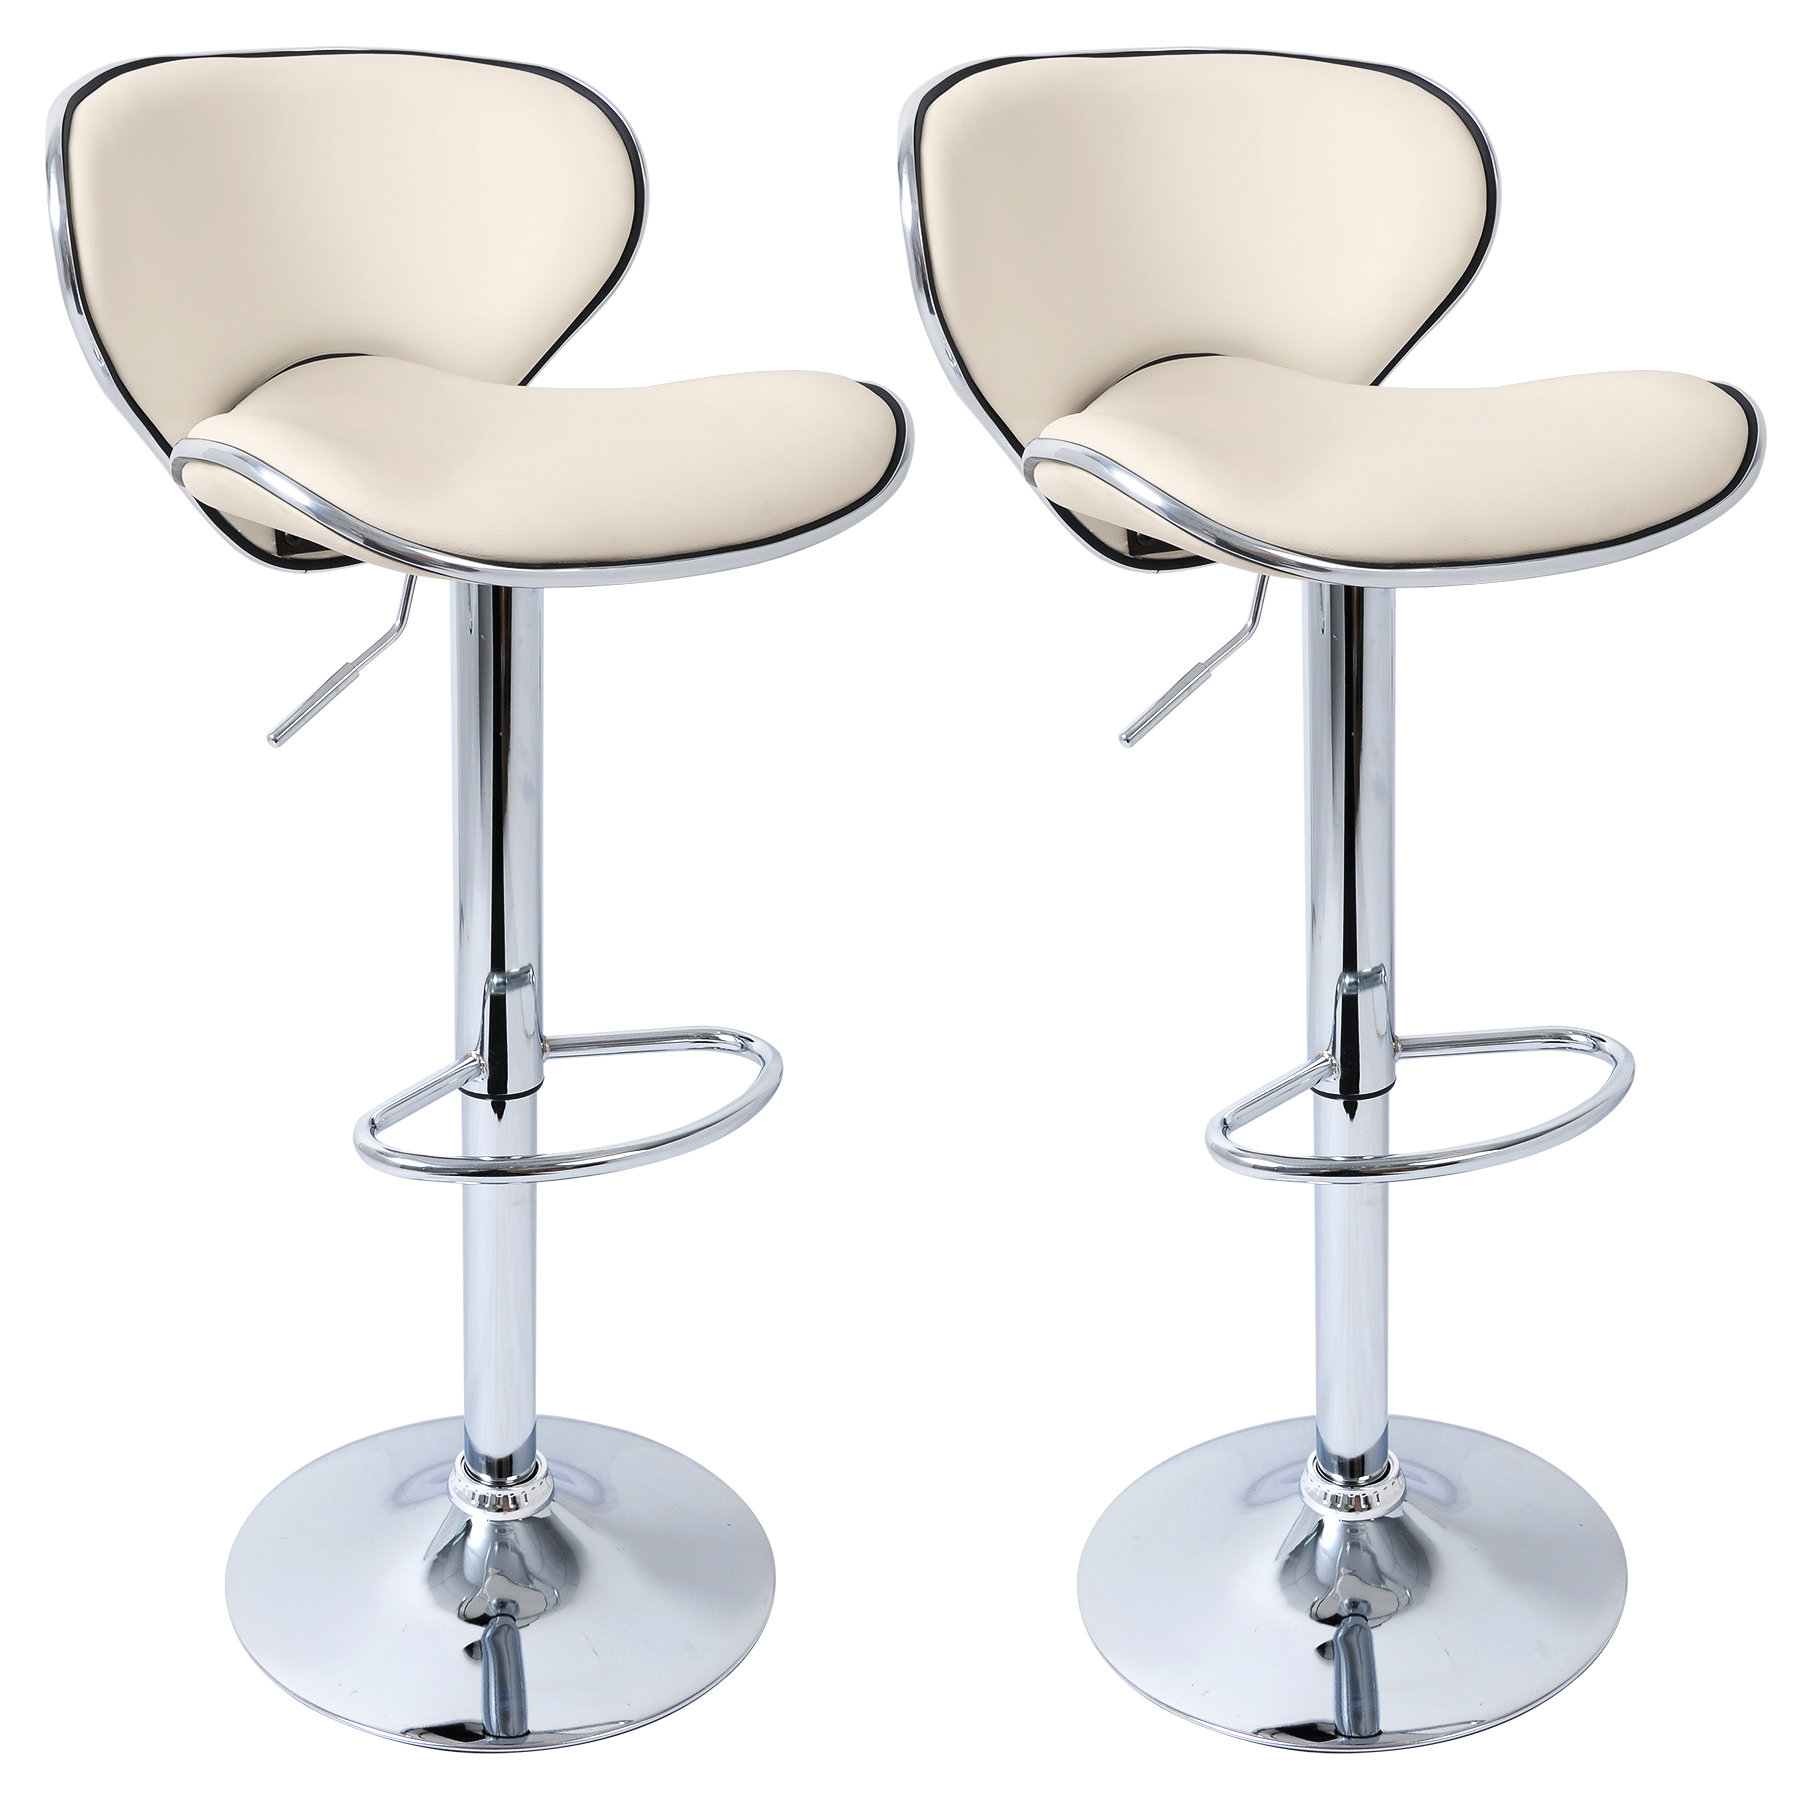 Set Of 2 Faux Leather Bar Stools Chrom Kitchen Breakfast